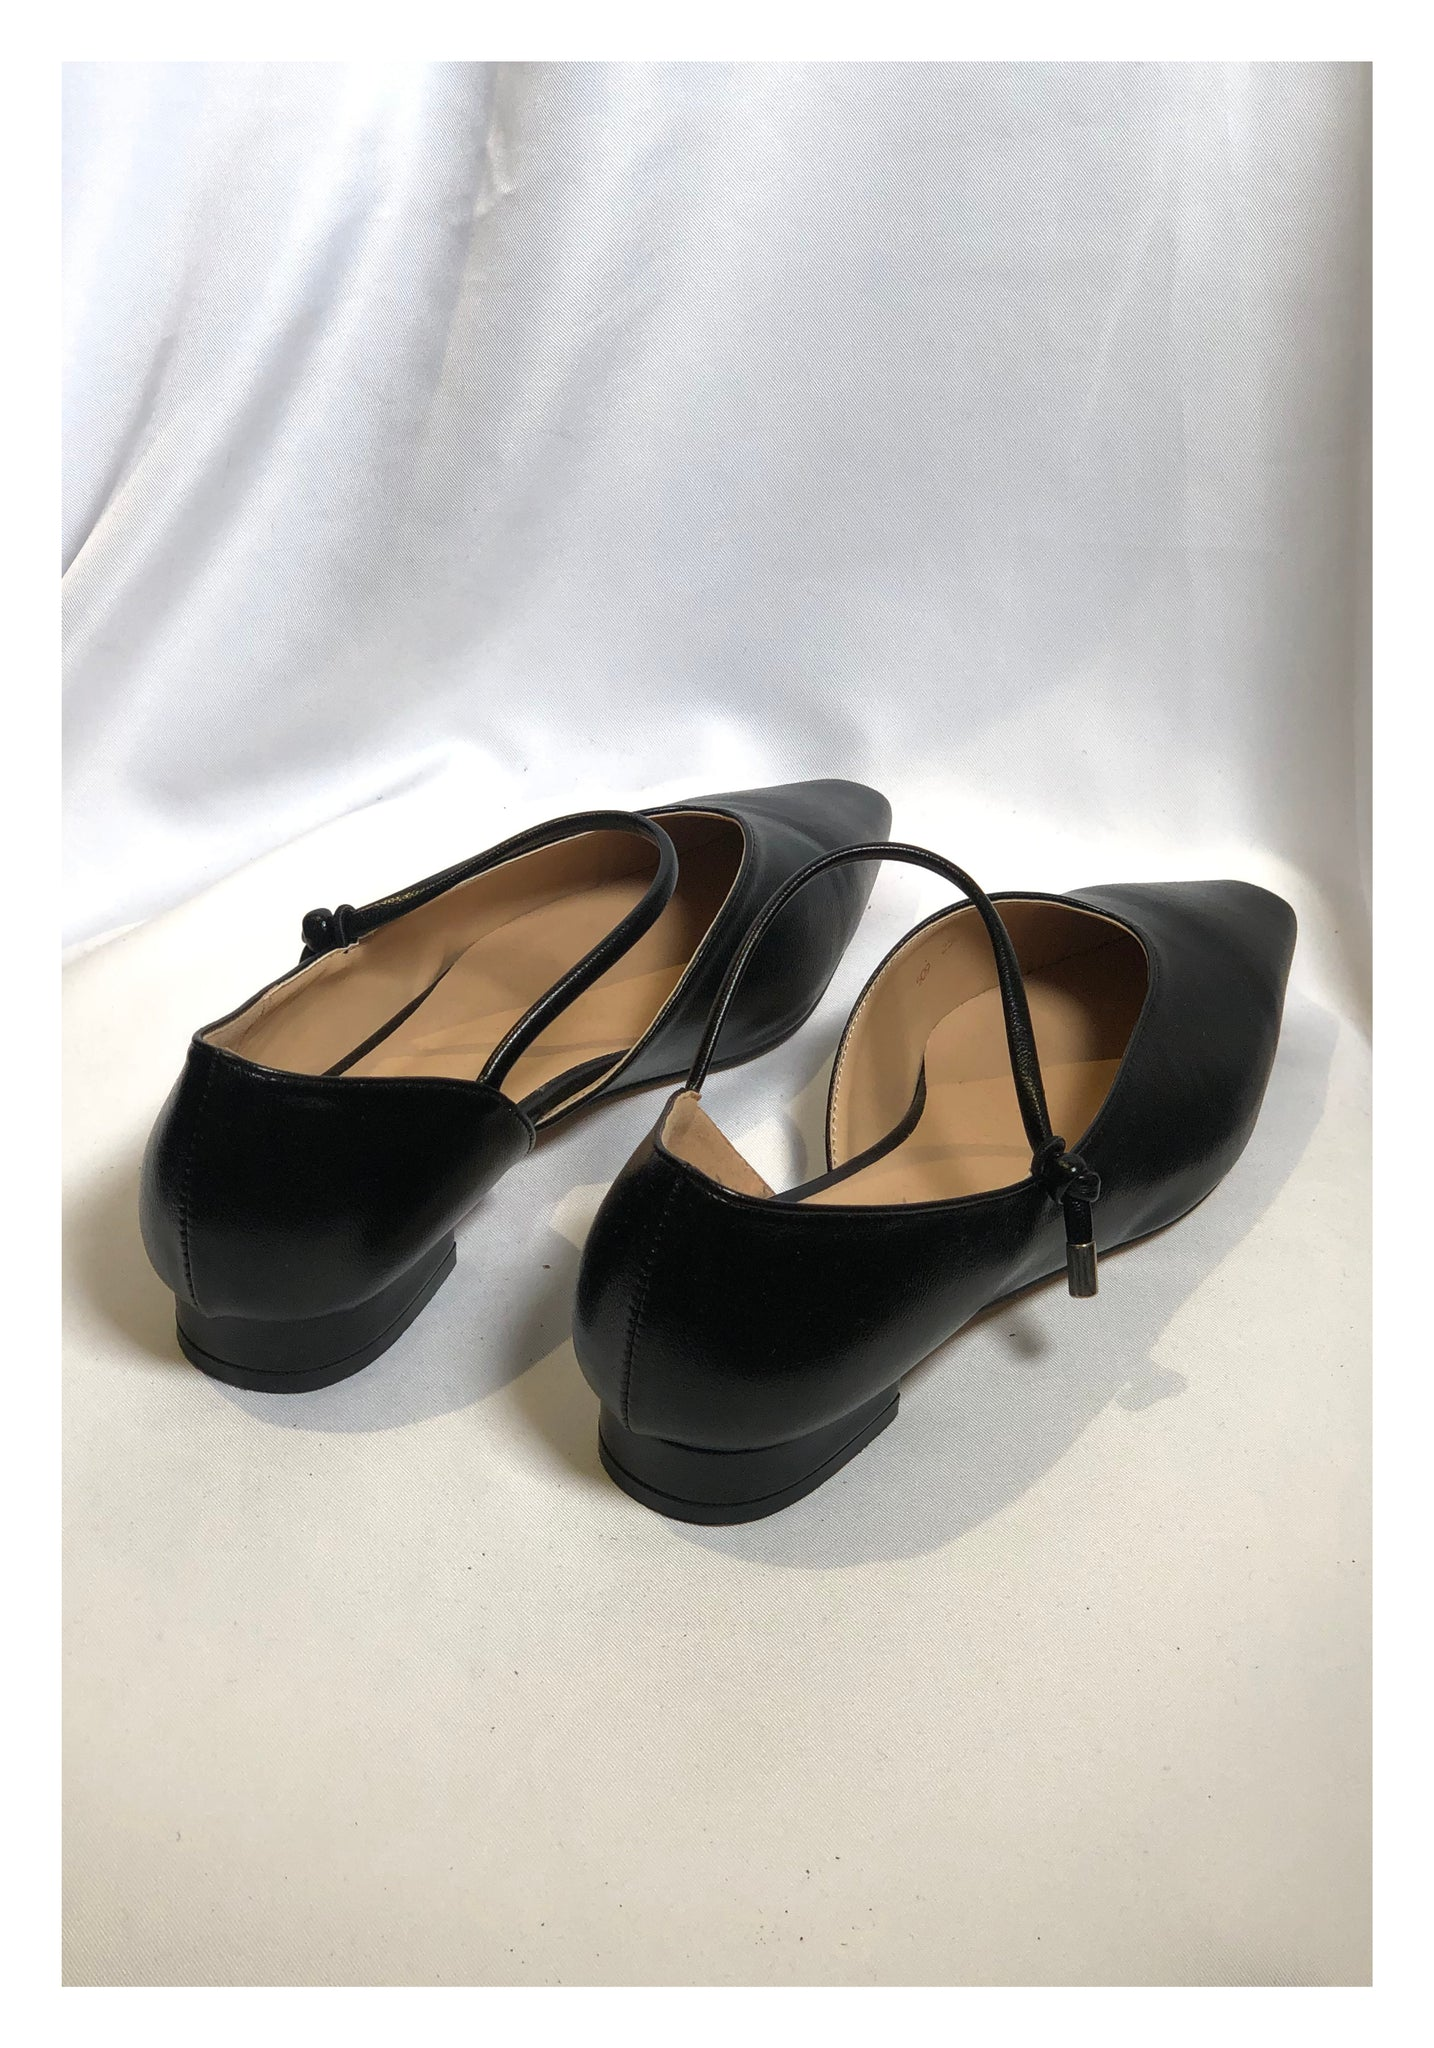 Sample Shoes - Pointed Strap Shoes Black - whoami